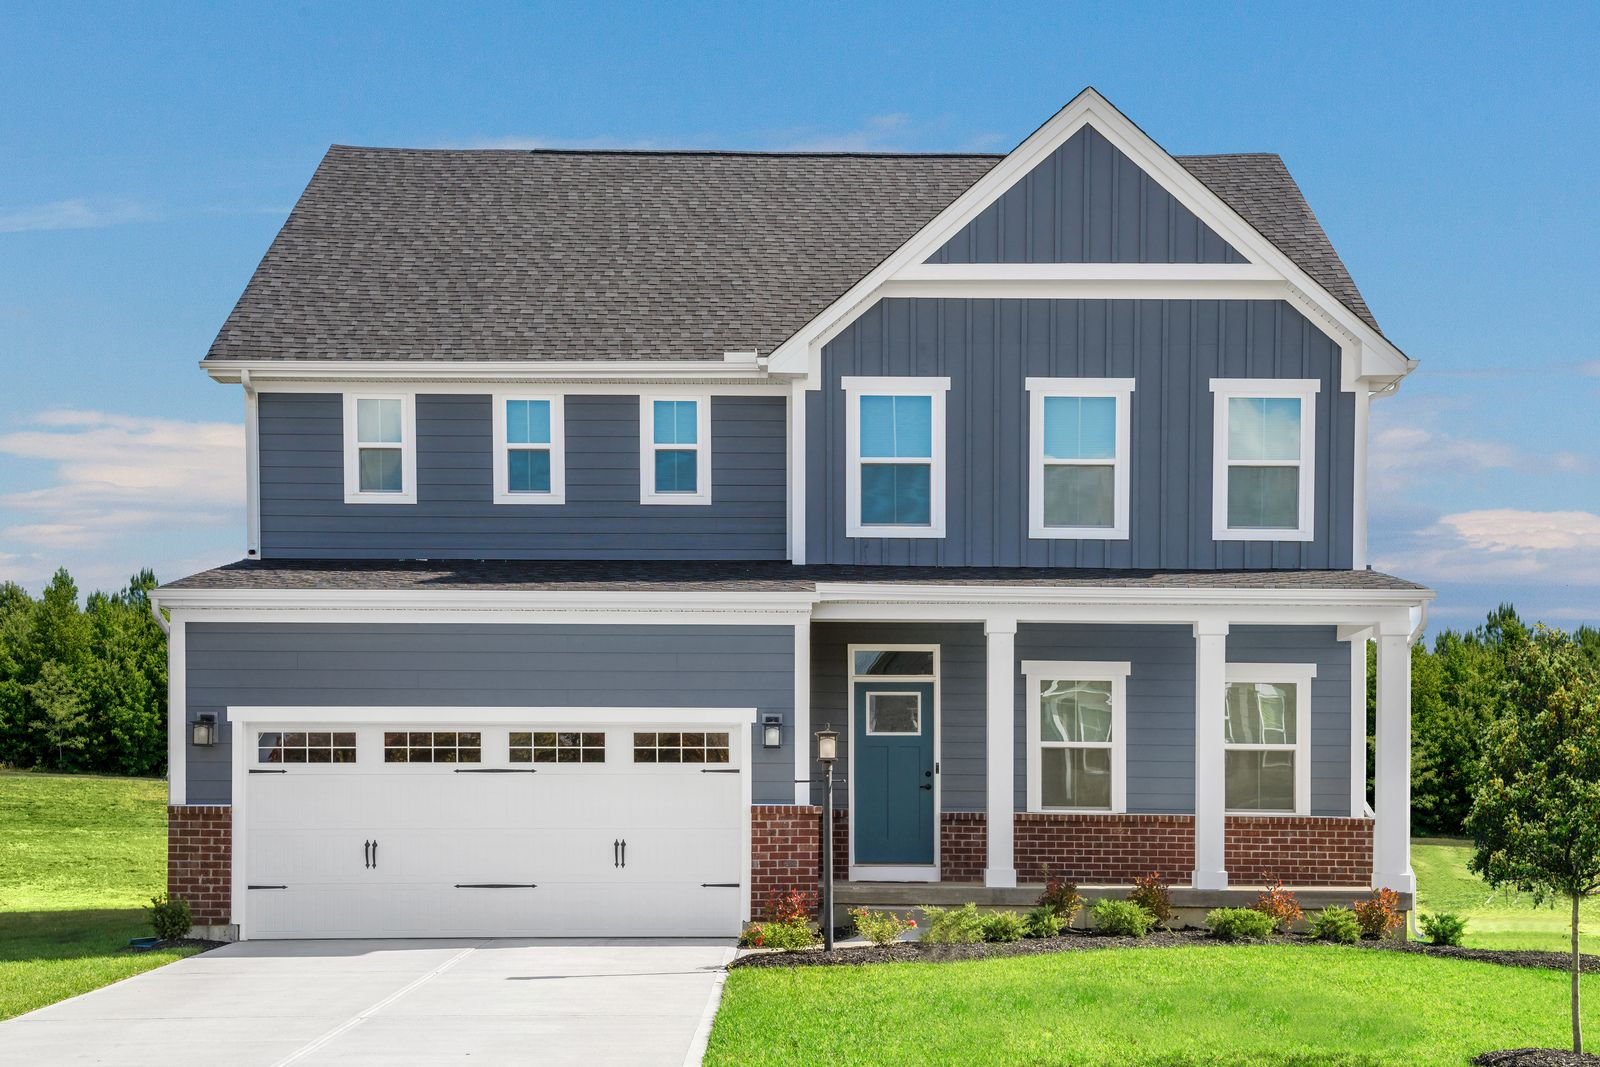 Welcome Home to Pine Bluffs:New floorplans just released! 2-story homes from the low $300s in a beautifully maintained established community in Milford School District.Schedule your 1 on 1, phone, or video appointment!